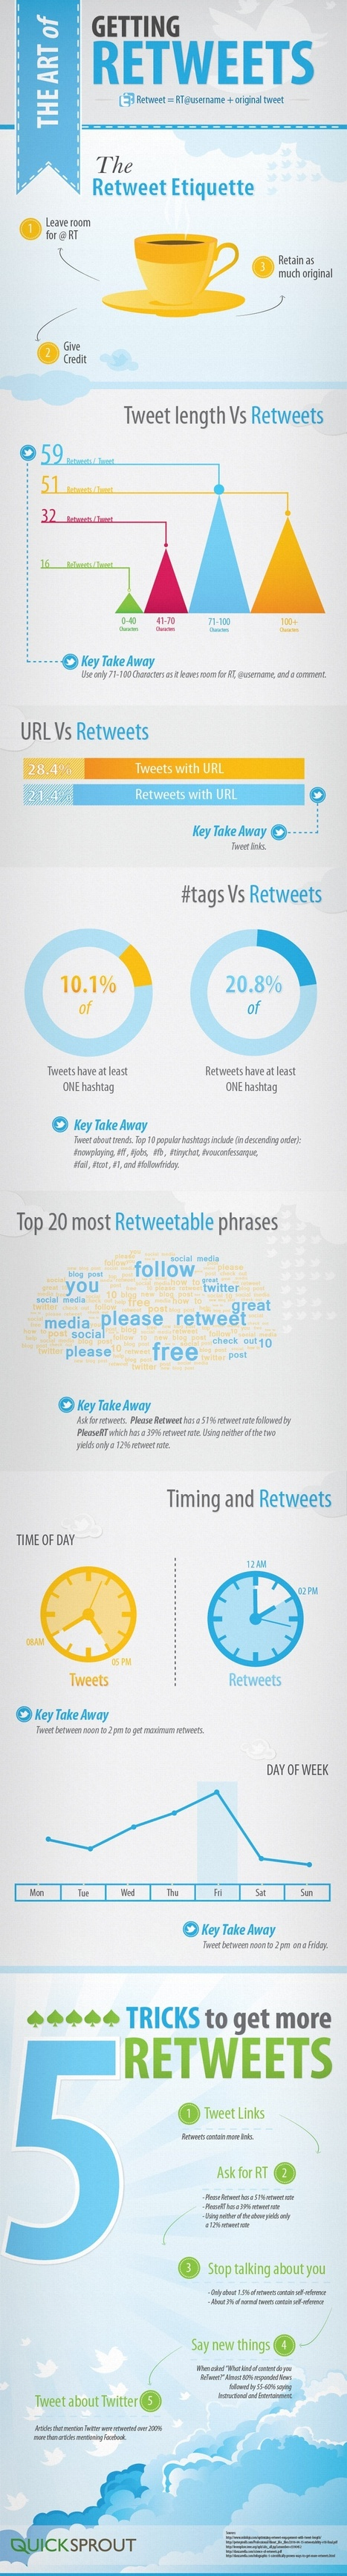 The Art of Getting Retweets | Social Media Today #infographic | MarketingHits | Scoop.it